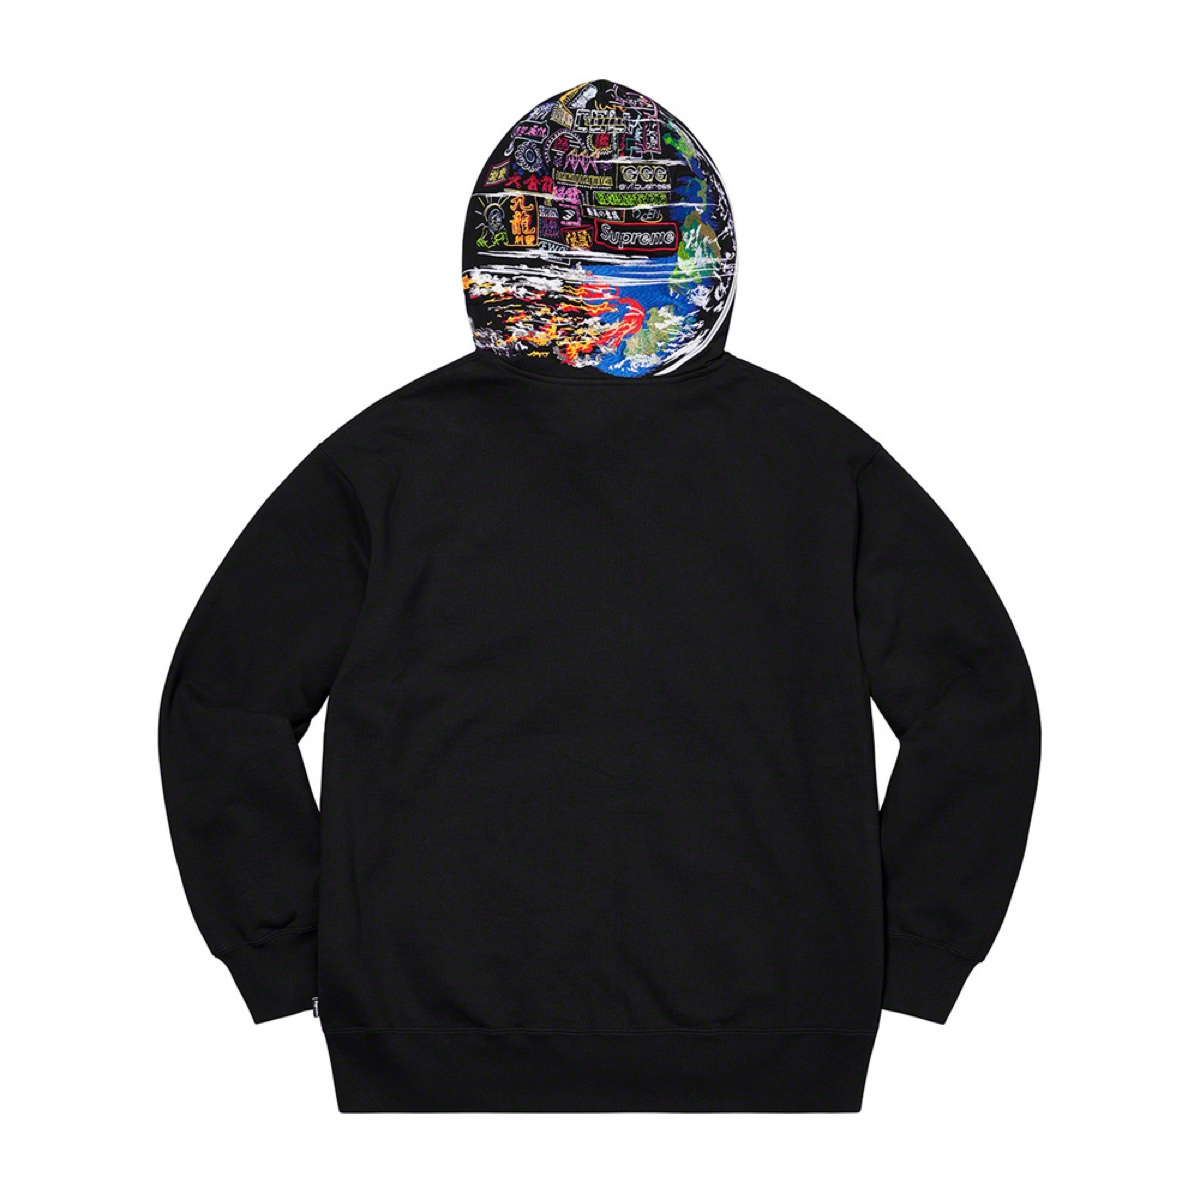 Globe Zip Up Hooded Sweatshirt Black